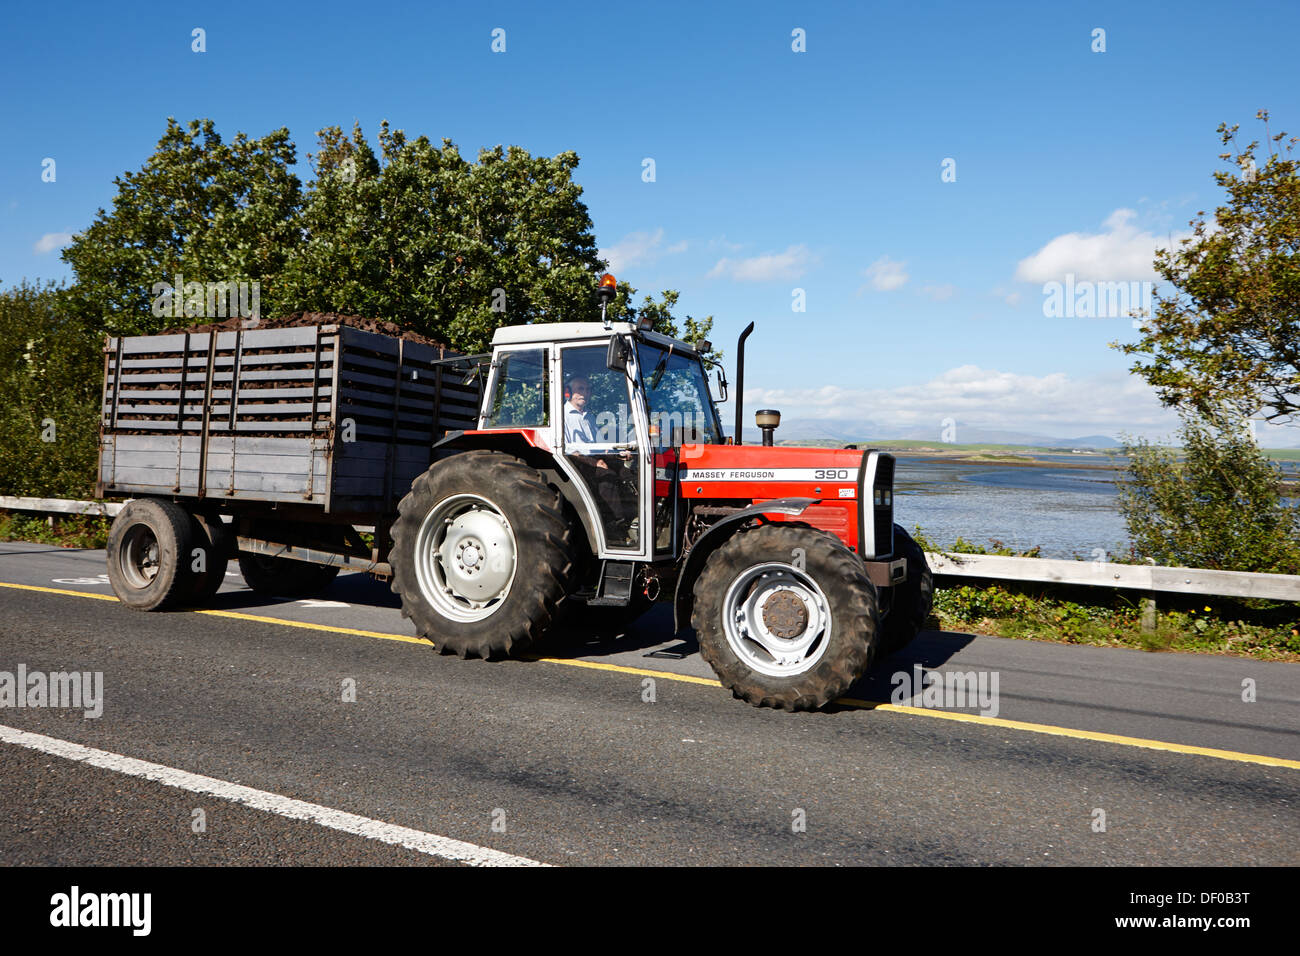 Tractor Pulling Trailer : Tractor towing trailer of cut dried turf for winter fuel